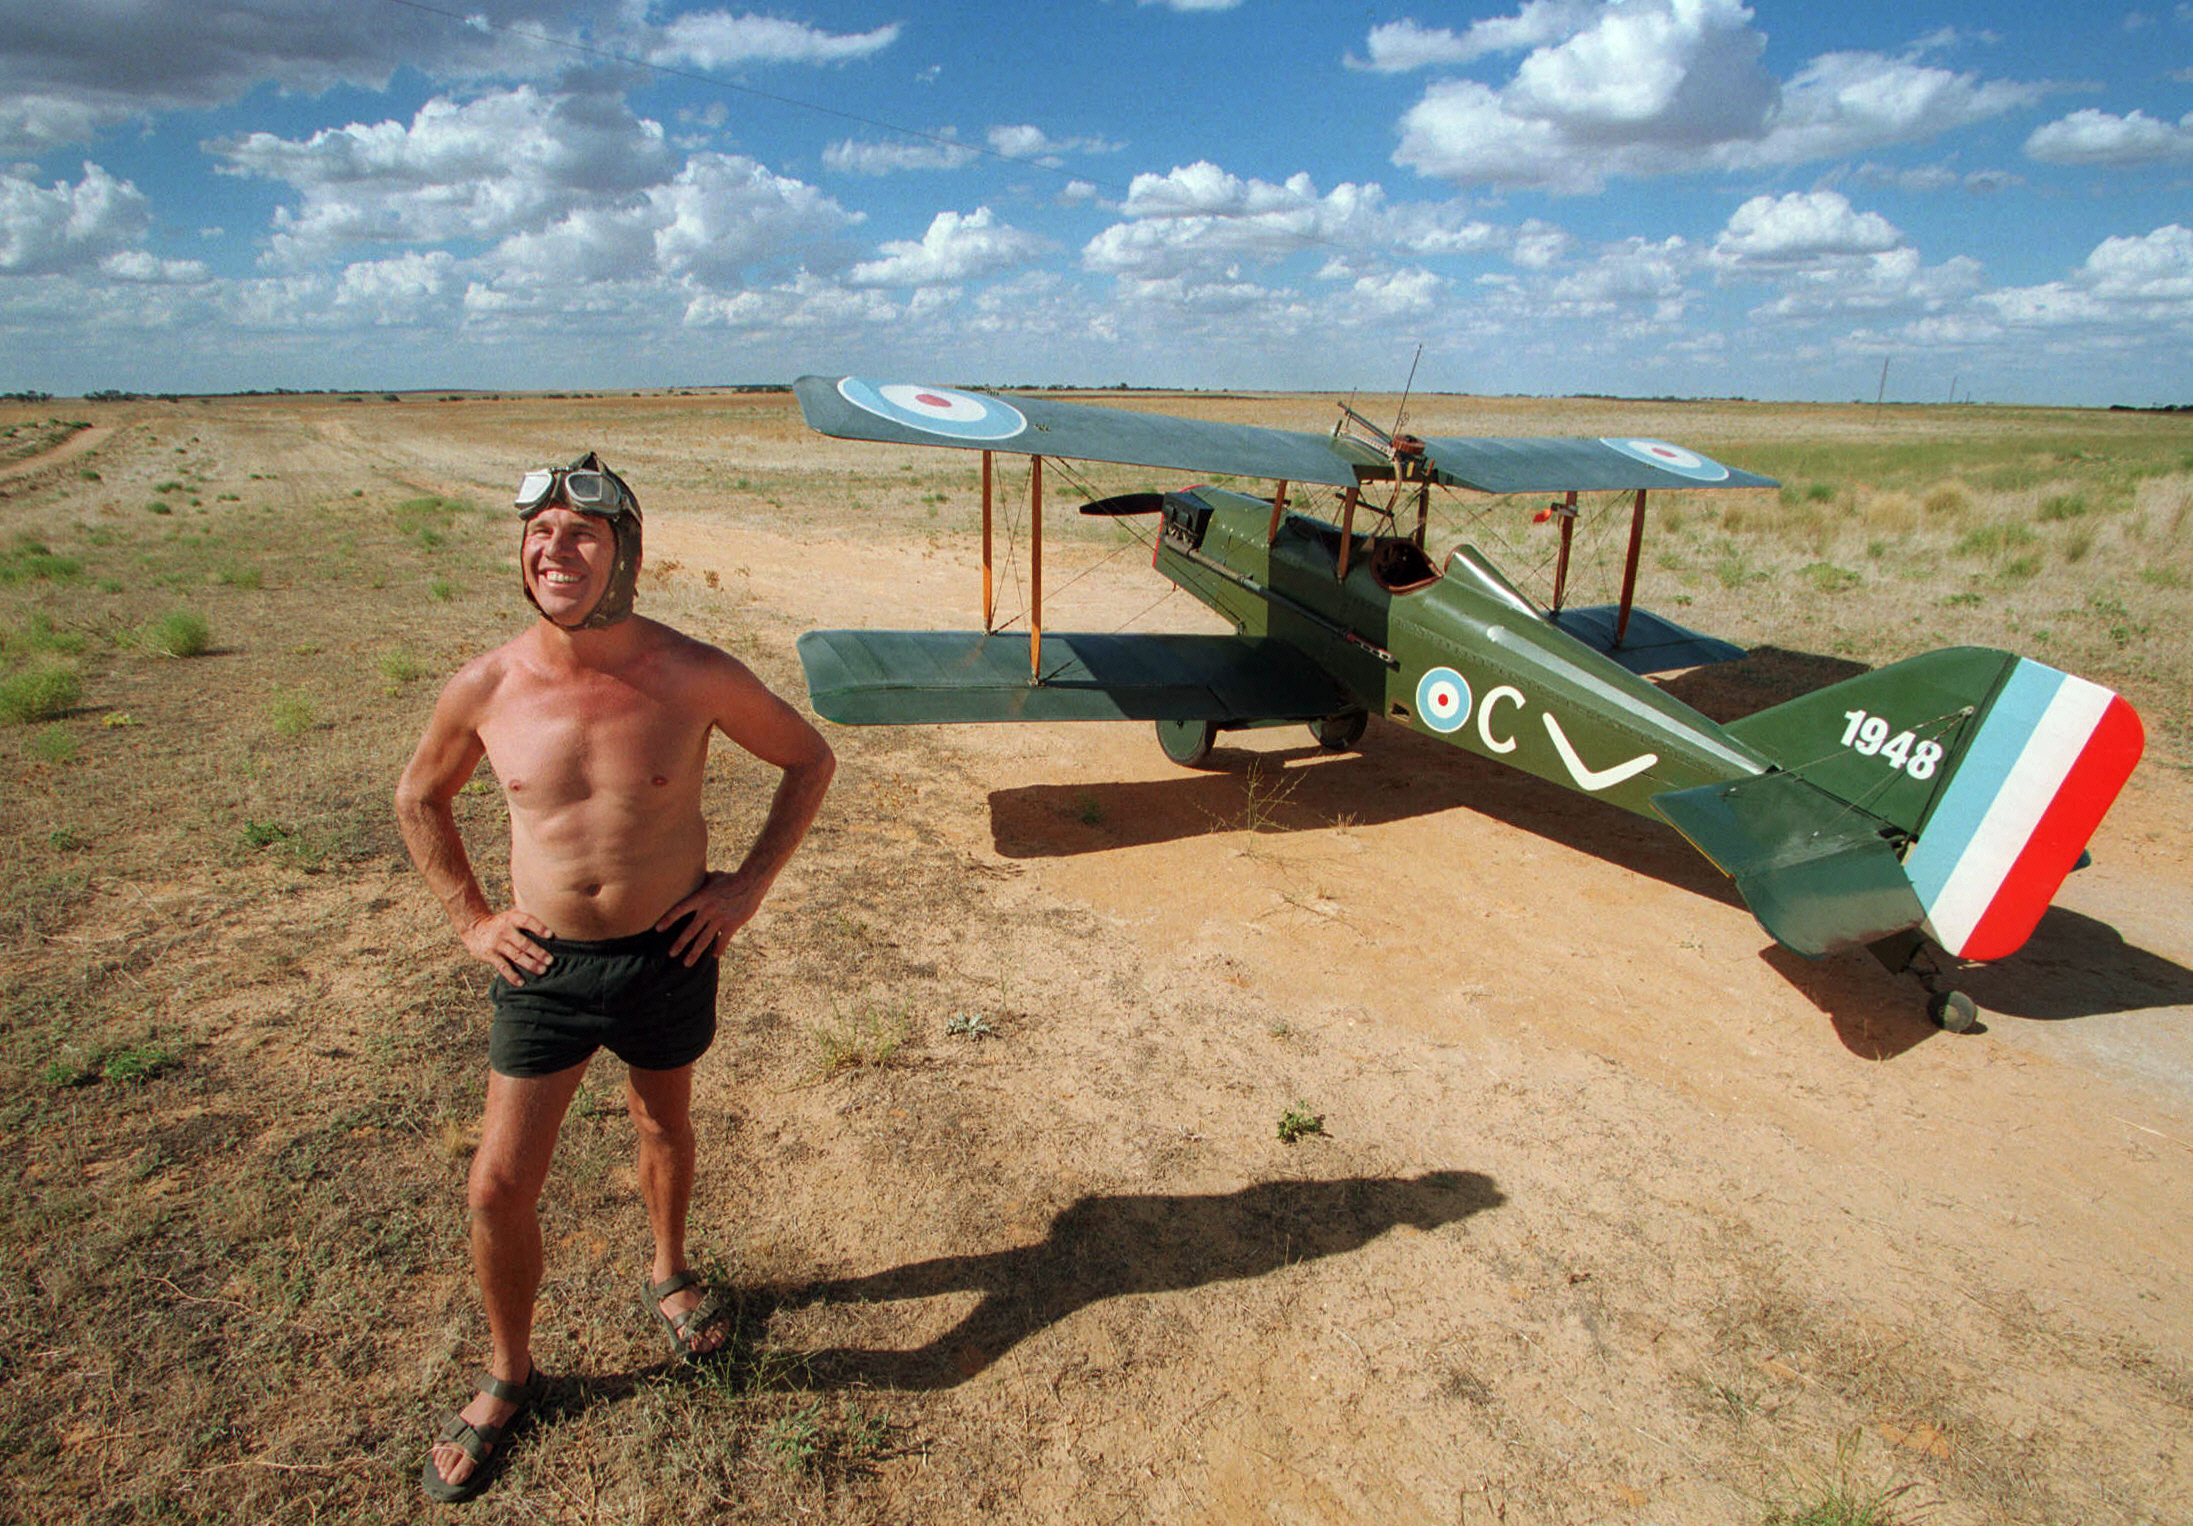 CHP_Export_39338038_SA farmer air pilot Mark McCleary and his replica World War I biplane 2001 -.jpg